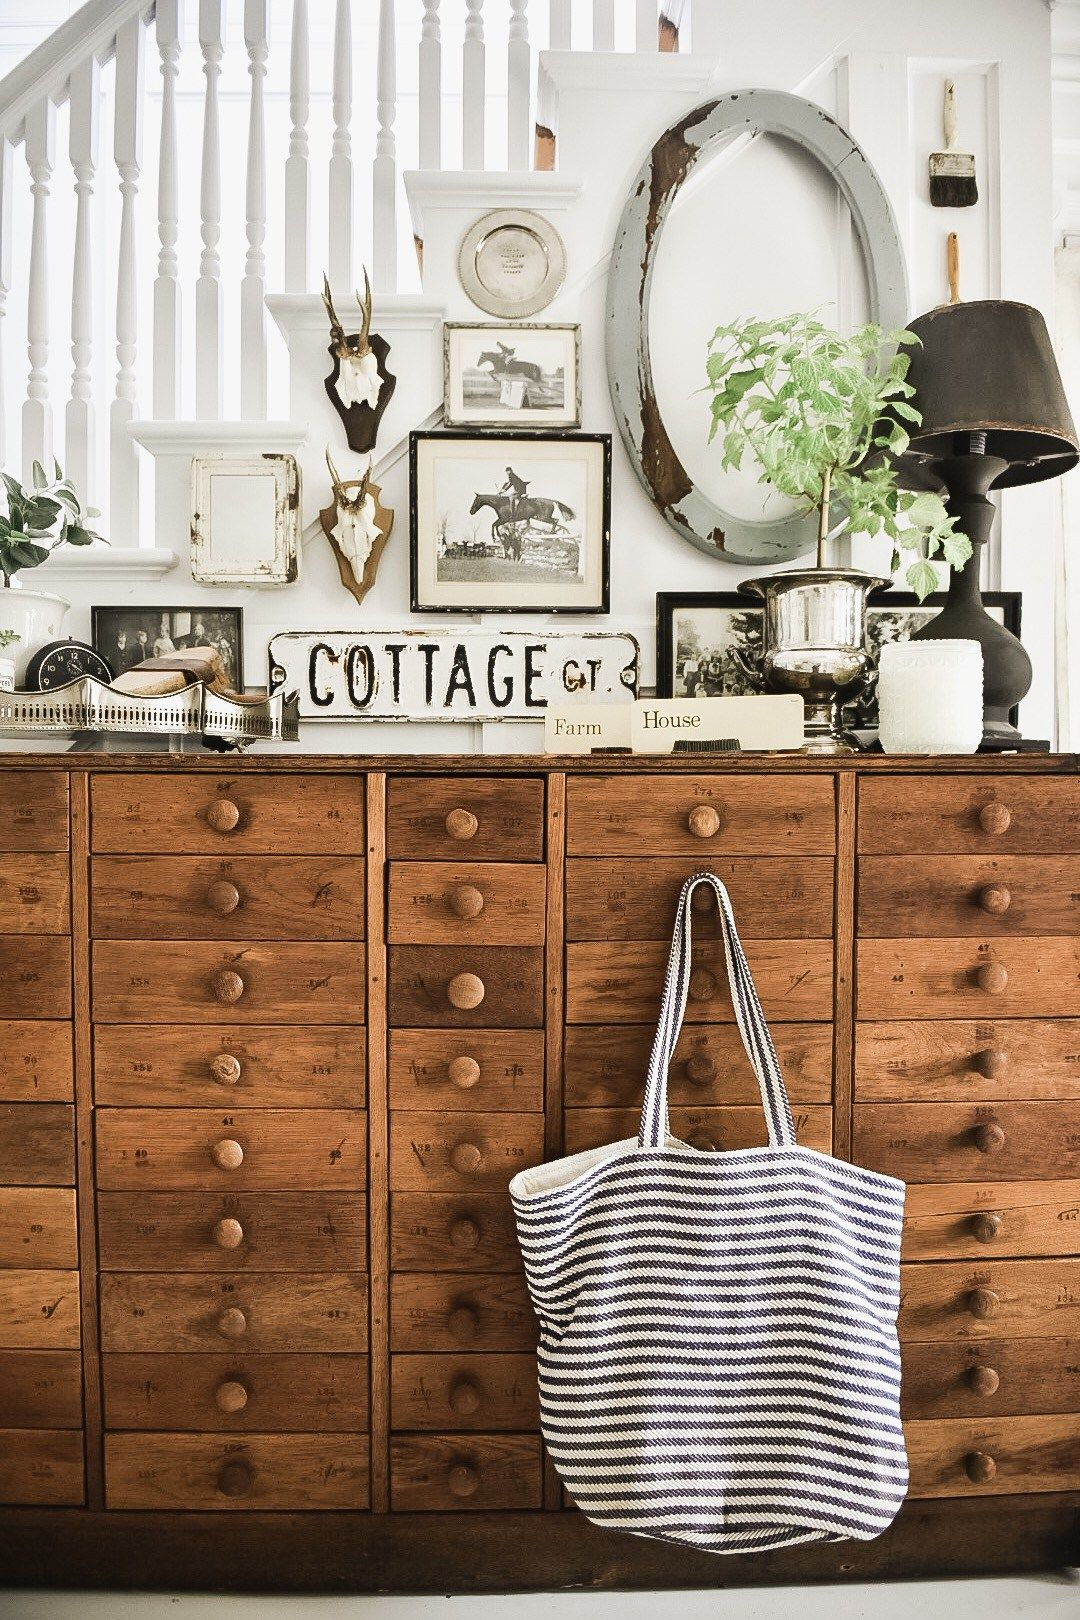 Liz Marie Has Redesigned Her Farmhouse Entryway Again. The Look Is A  Mixture Of Unique Vintage Finds, Check Out How It Turned Out.